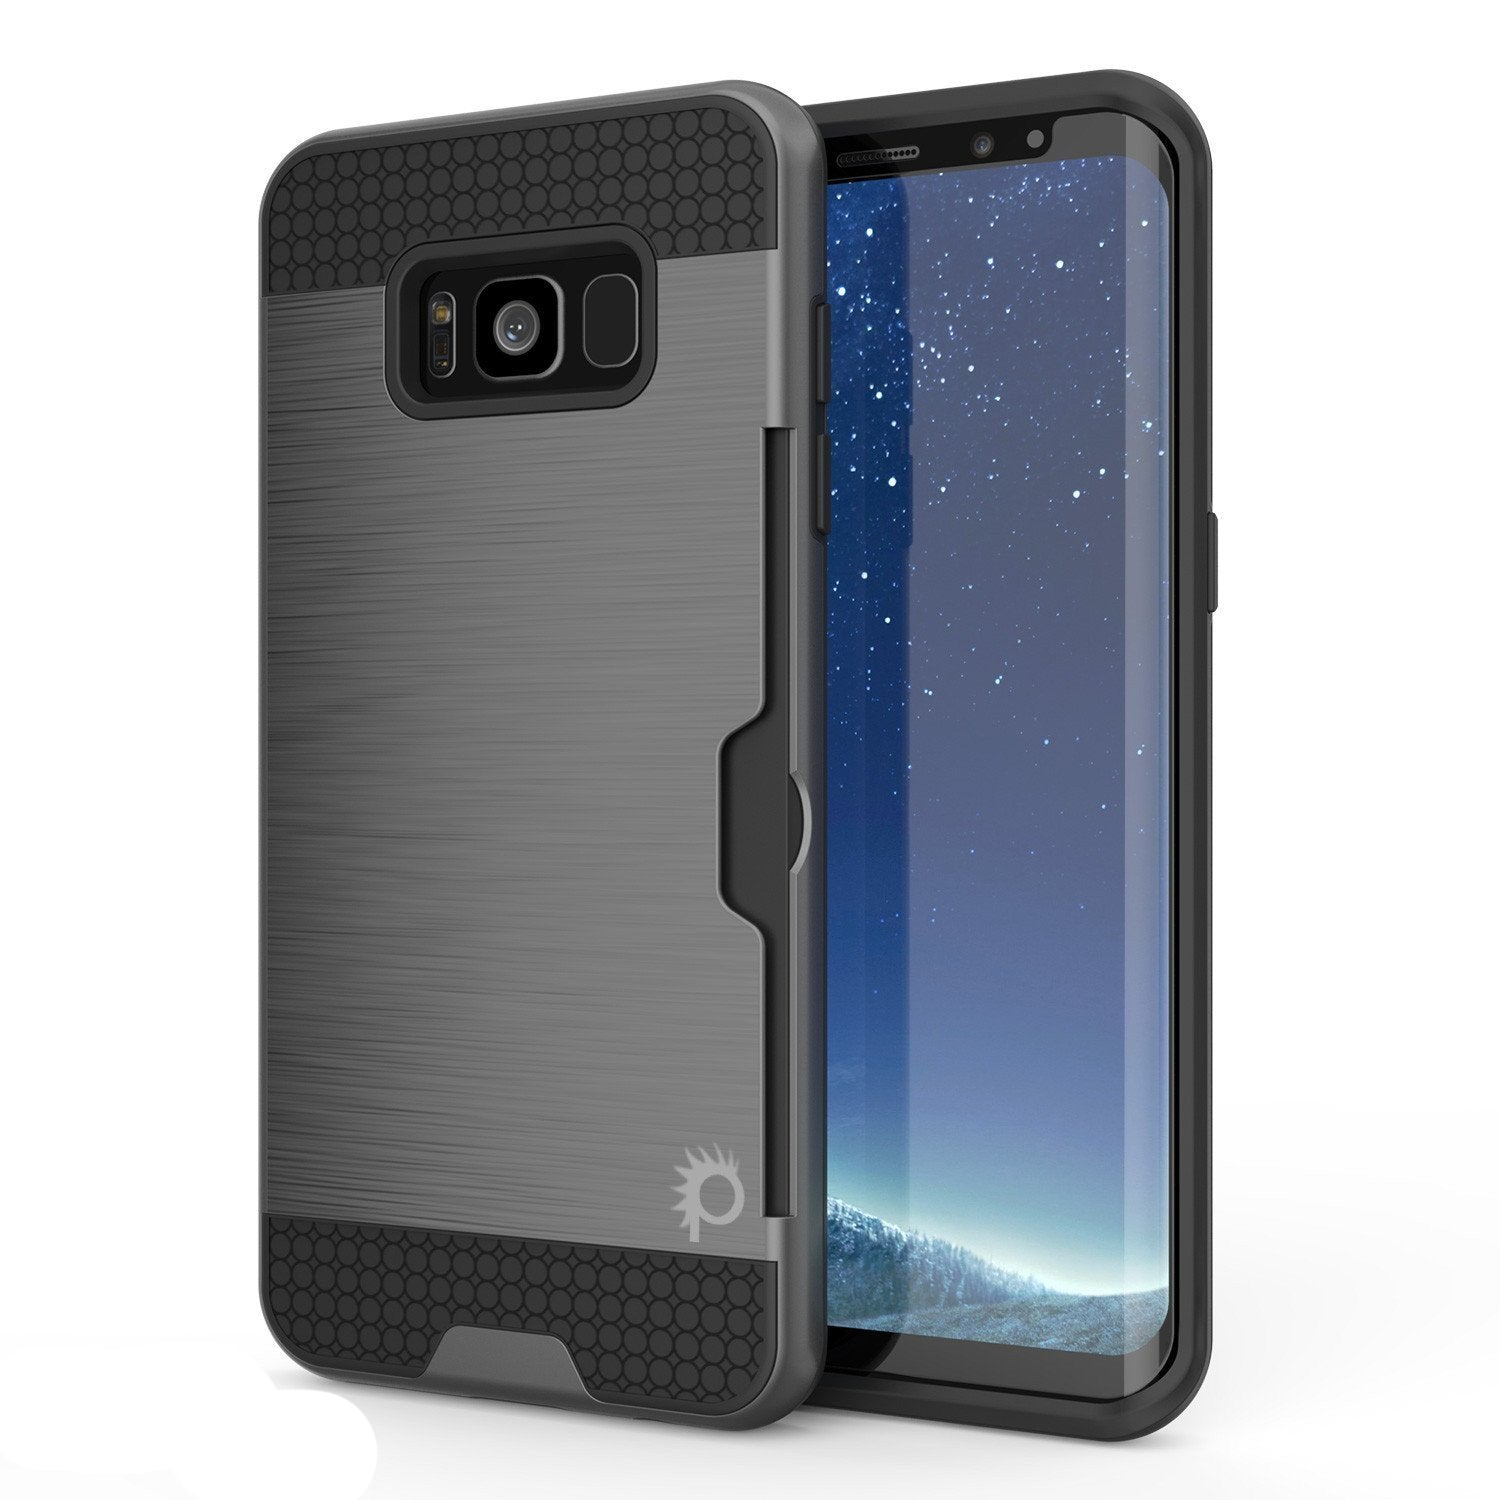 Galaxy S8 Case, PUNKcase [SLOT Series] [Slim Fit] [Gray]